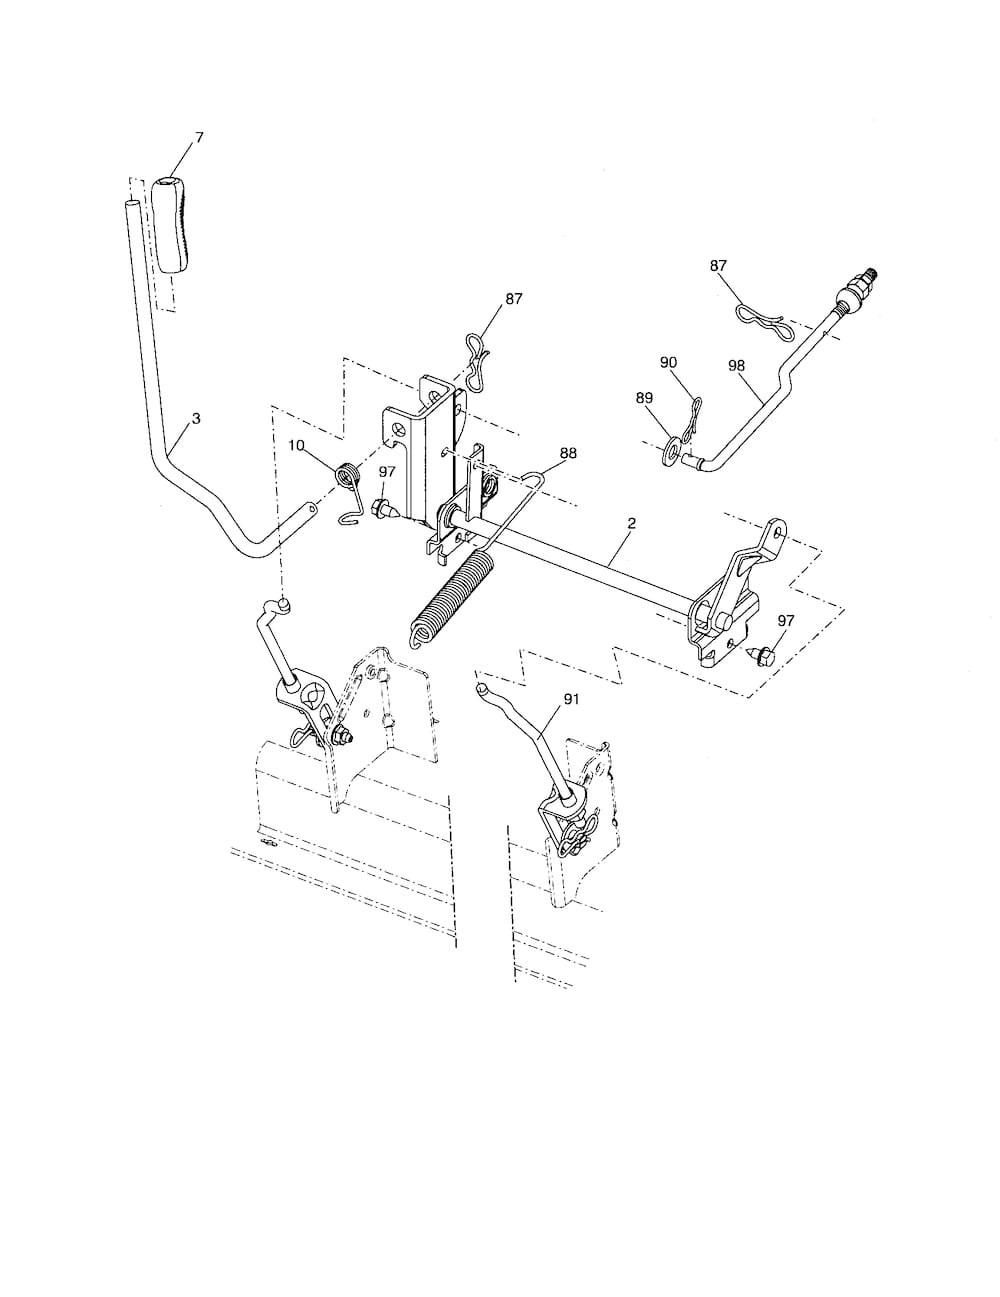 ... and Parts List for POULAN Riding-Mower-Tractor-Parts model # PB22H42YT